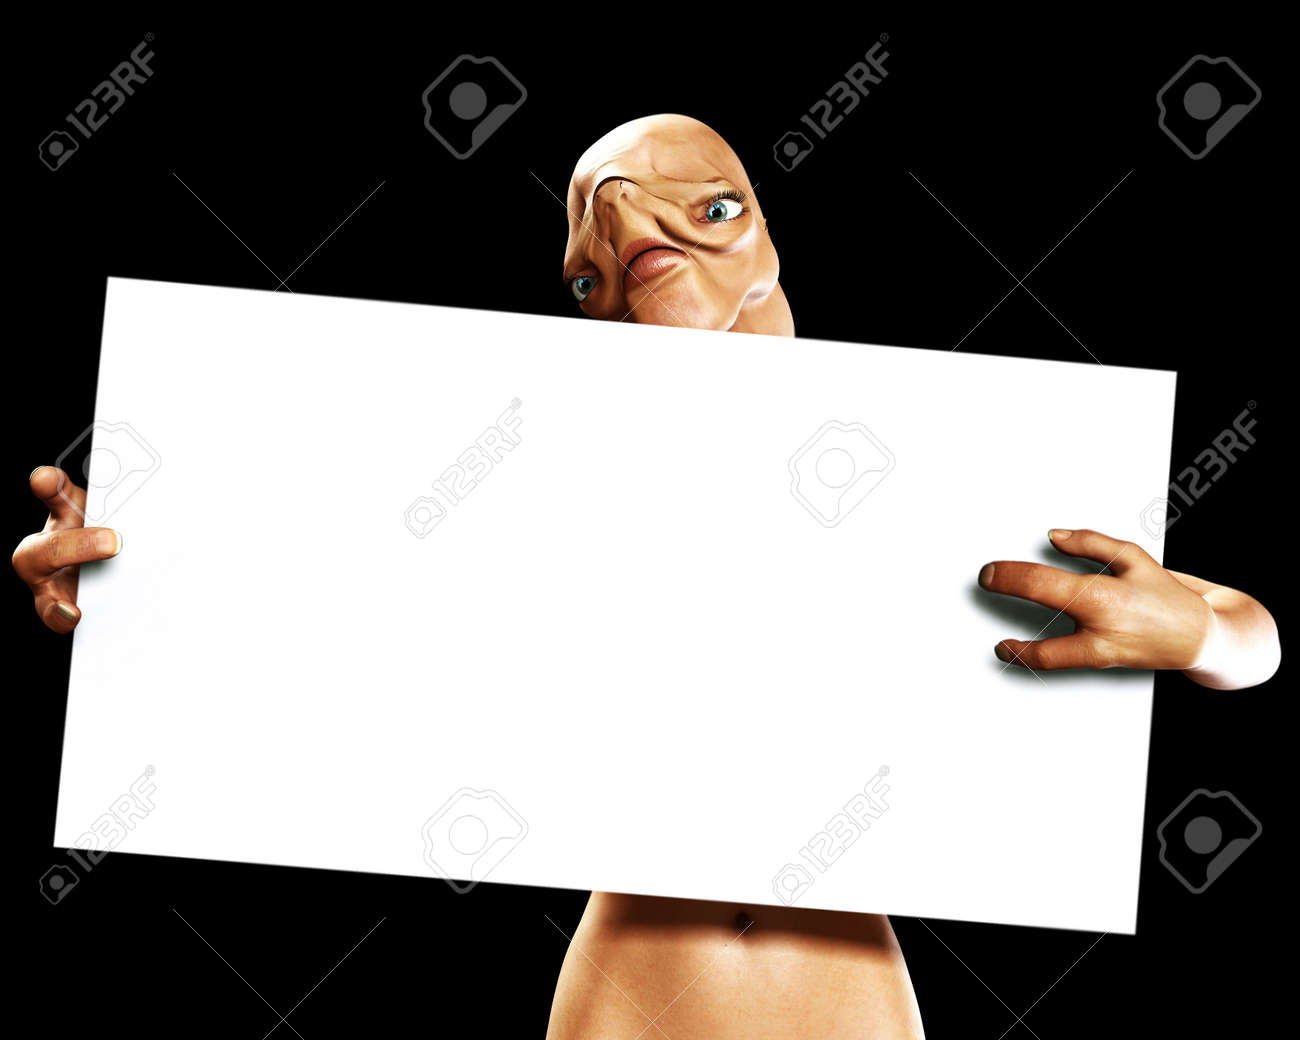 An image of an alien that is holding a blank sign. Stock Photo - 1207236